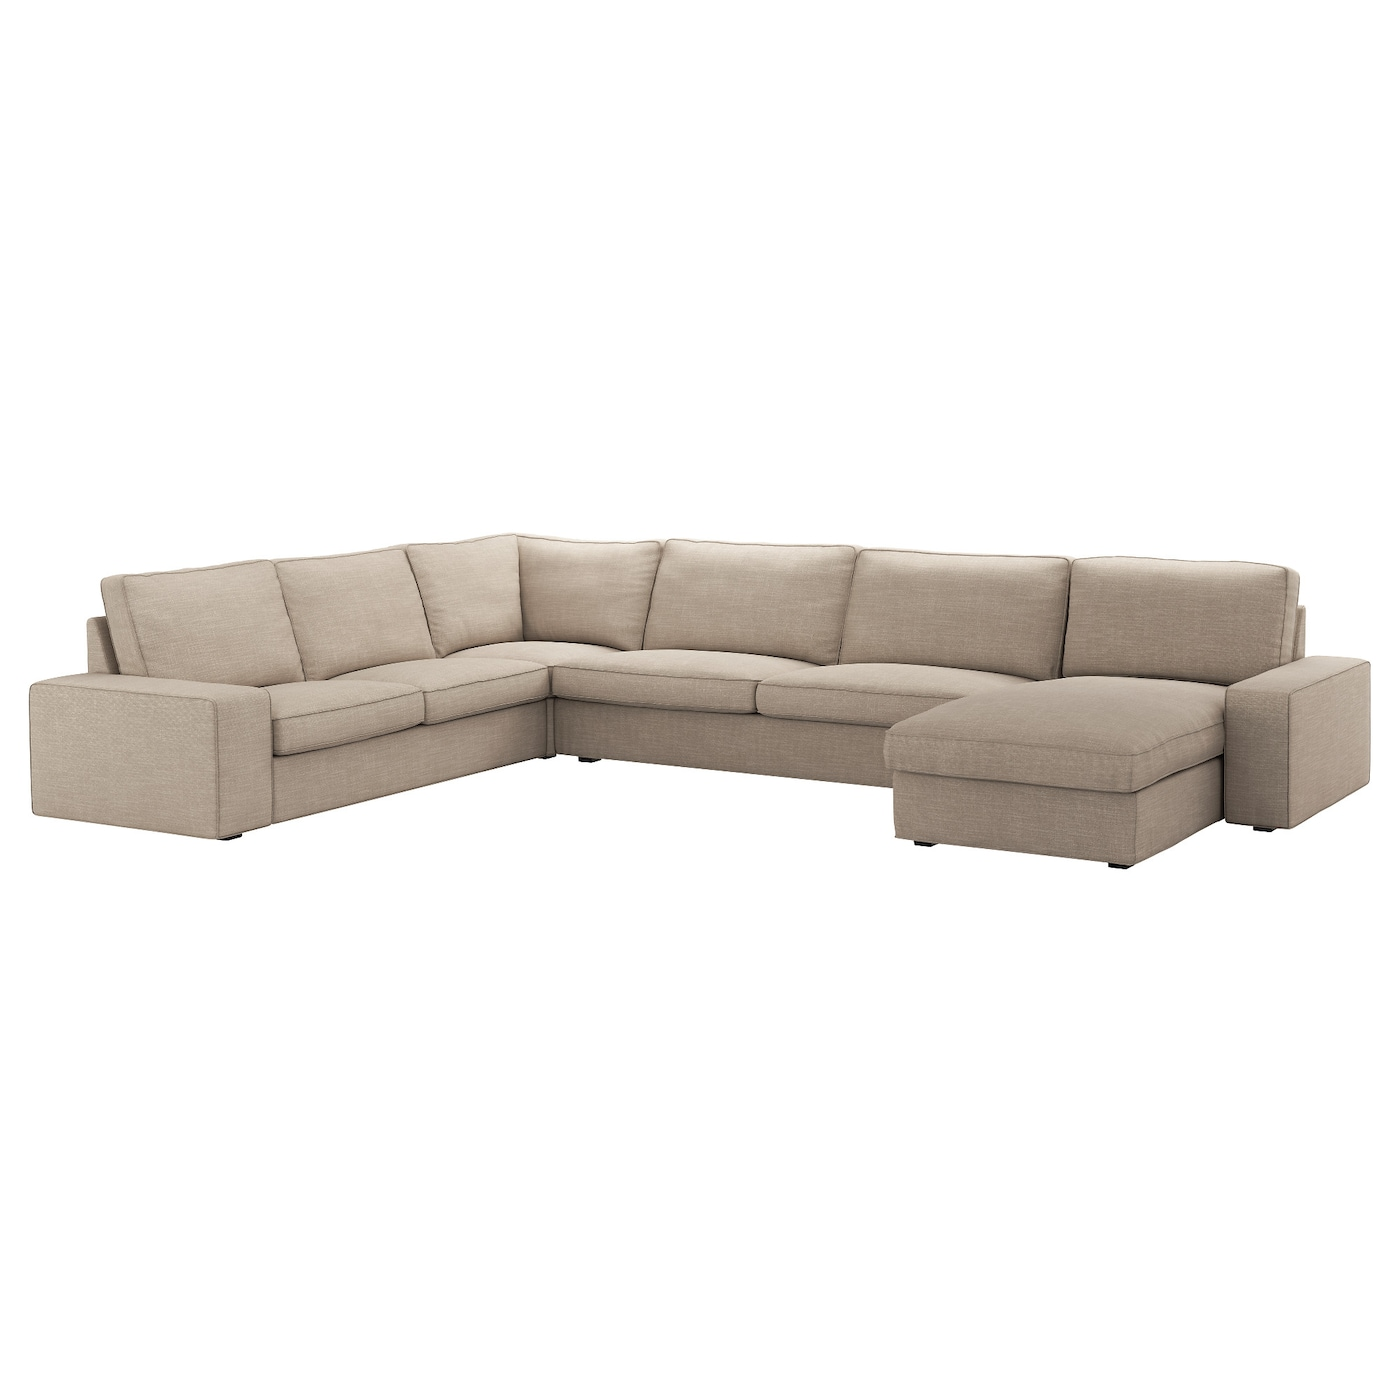 Kivik corner sofa 23 32 and chaise longue hillared beige - Sofas en esquina ...